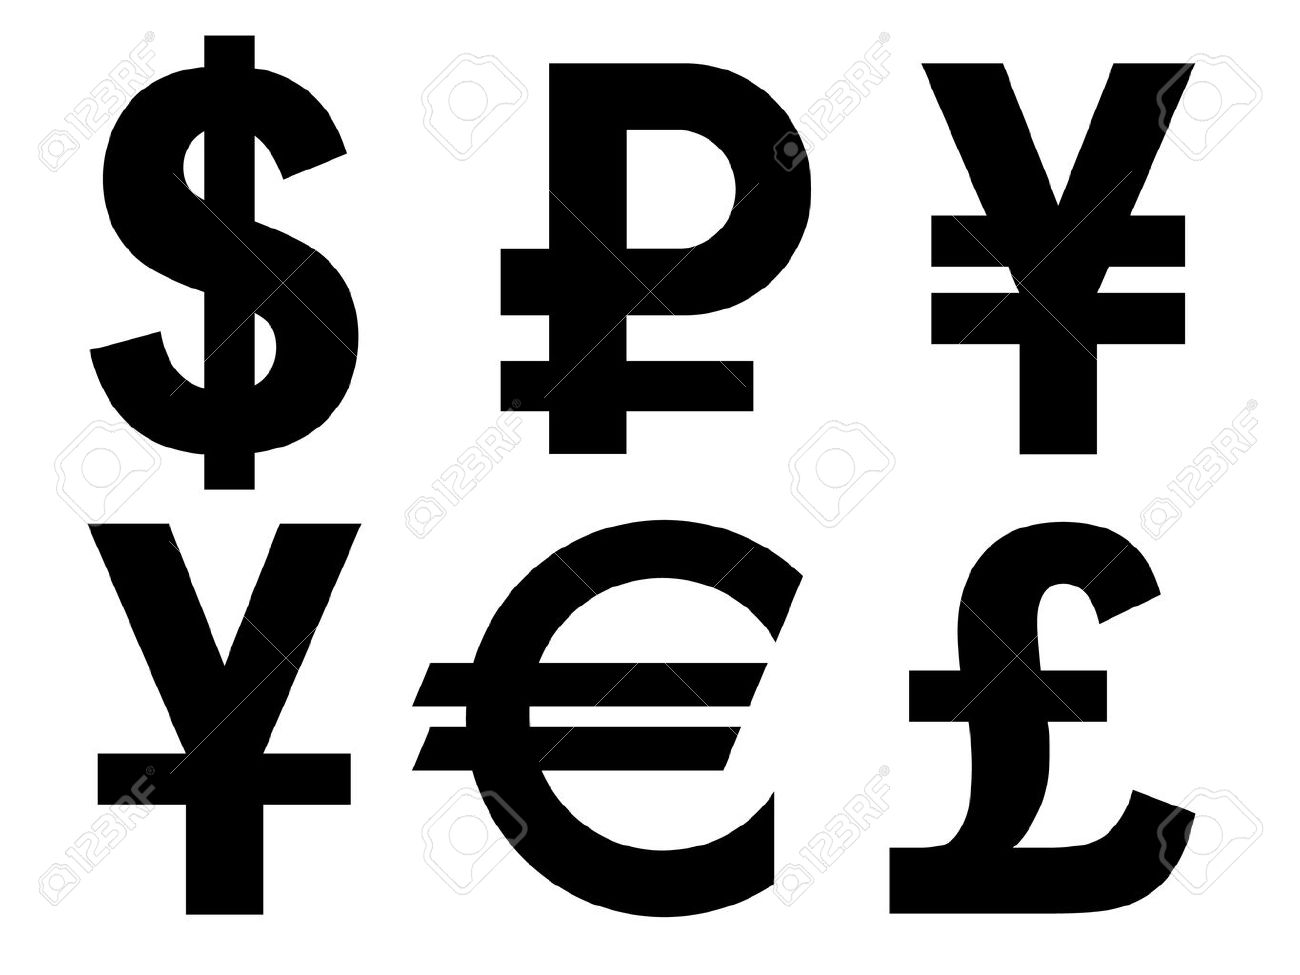 A set of currency symbols royalty free cliparts vectors and a set of currency symbols stock vector 7442282 biocorpaavc Choice Image